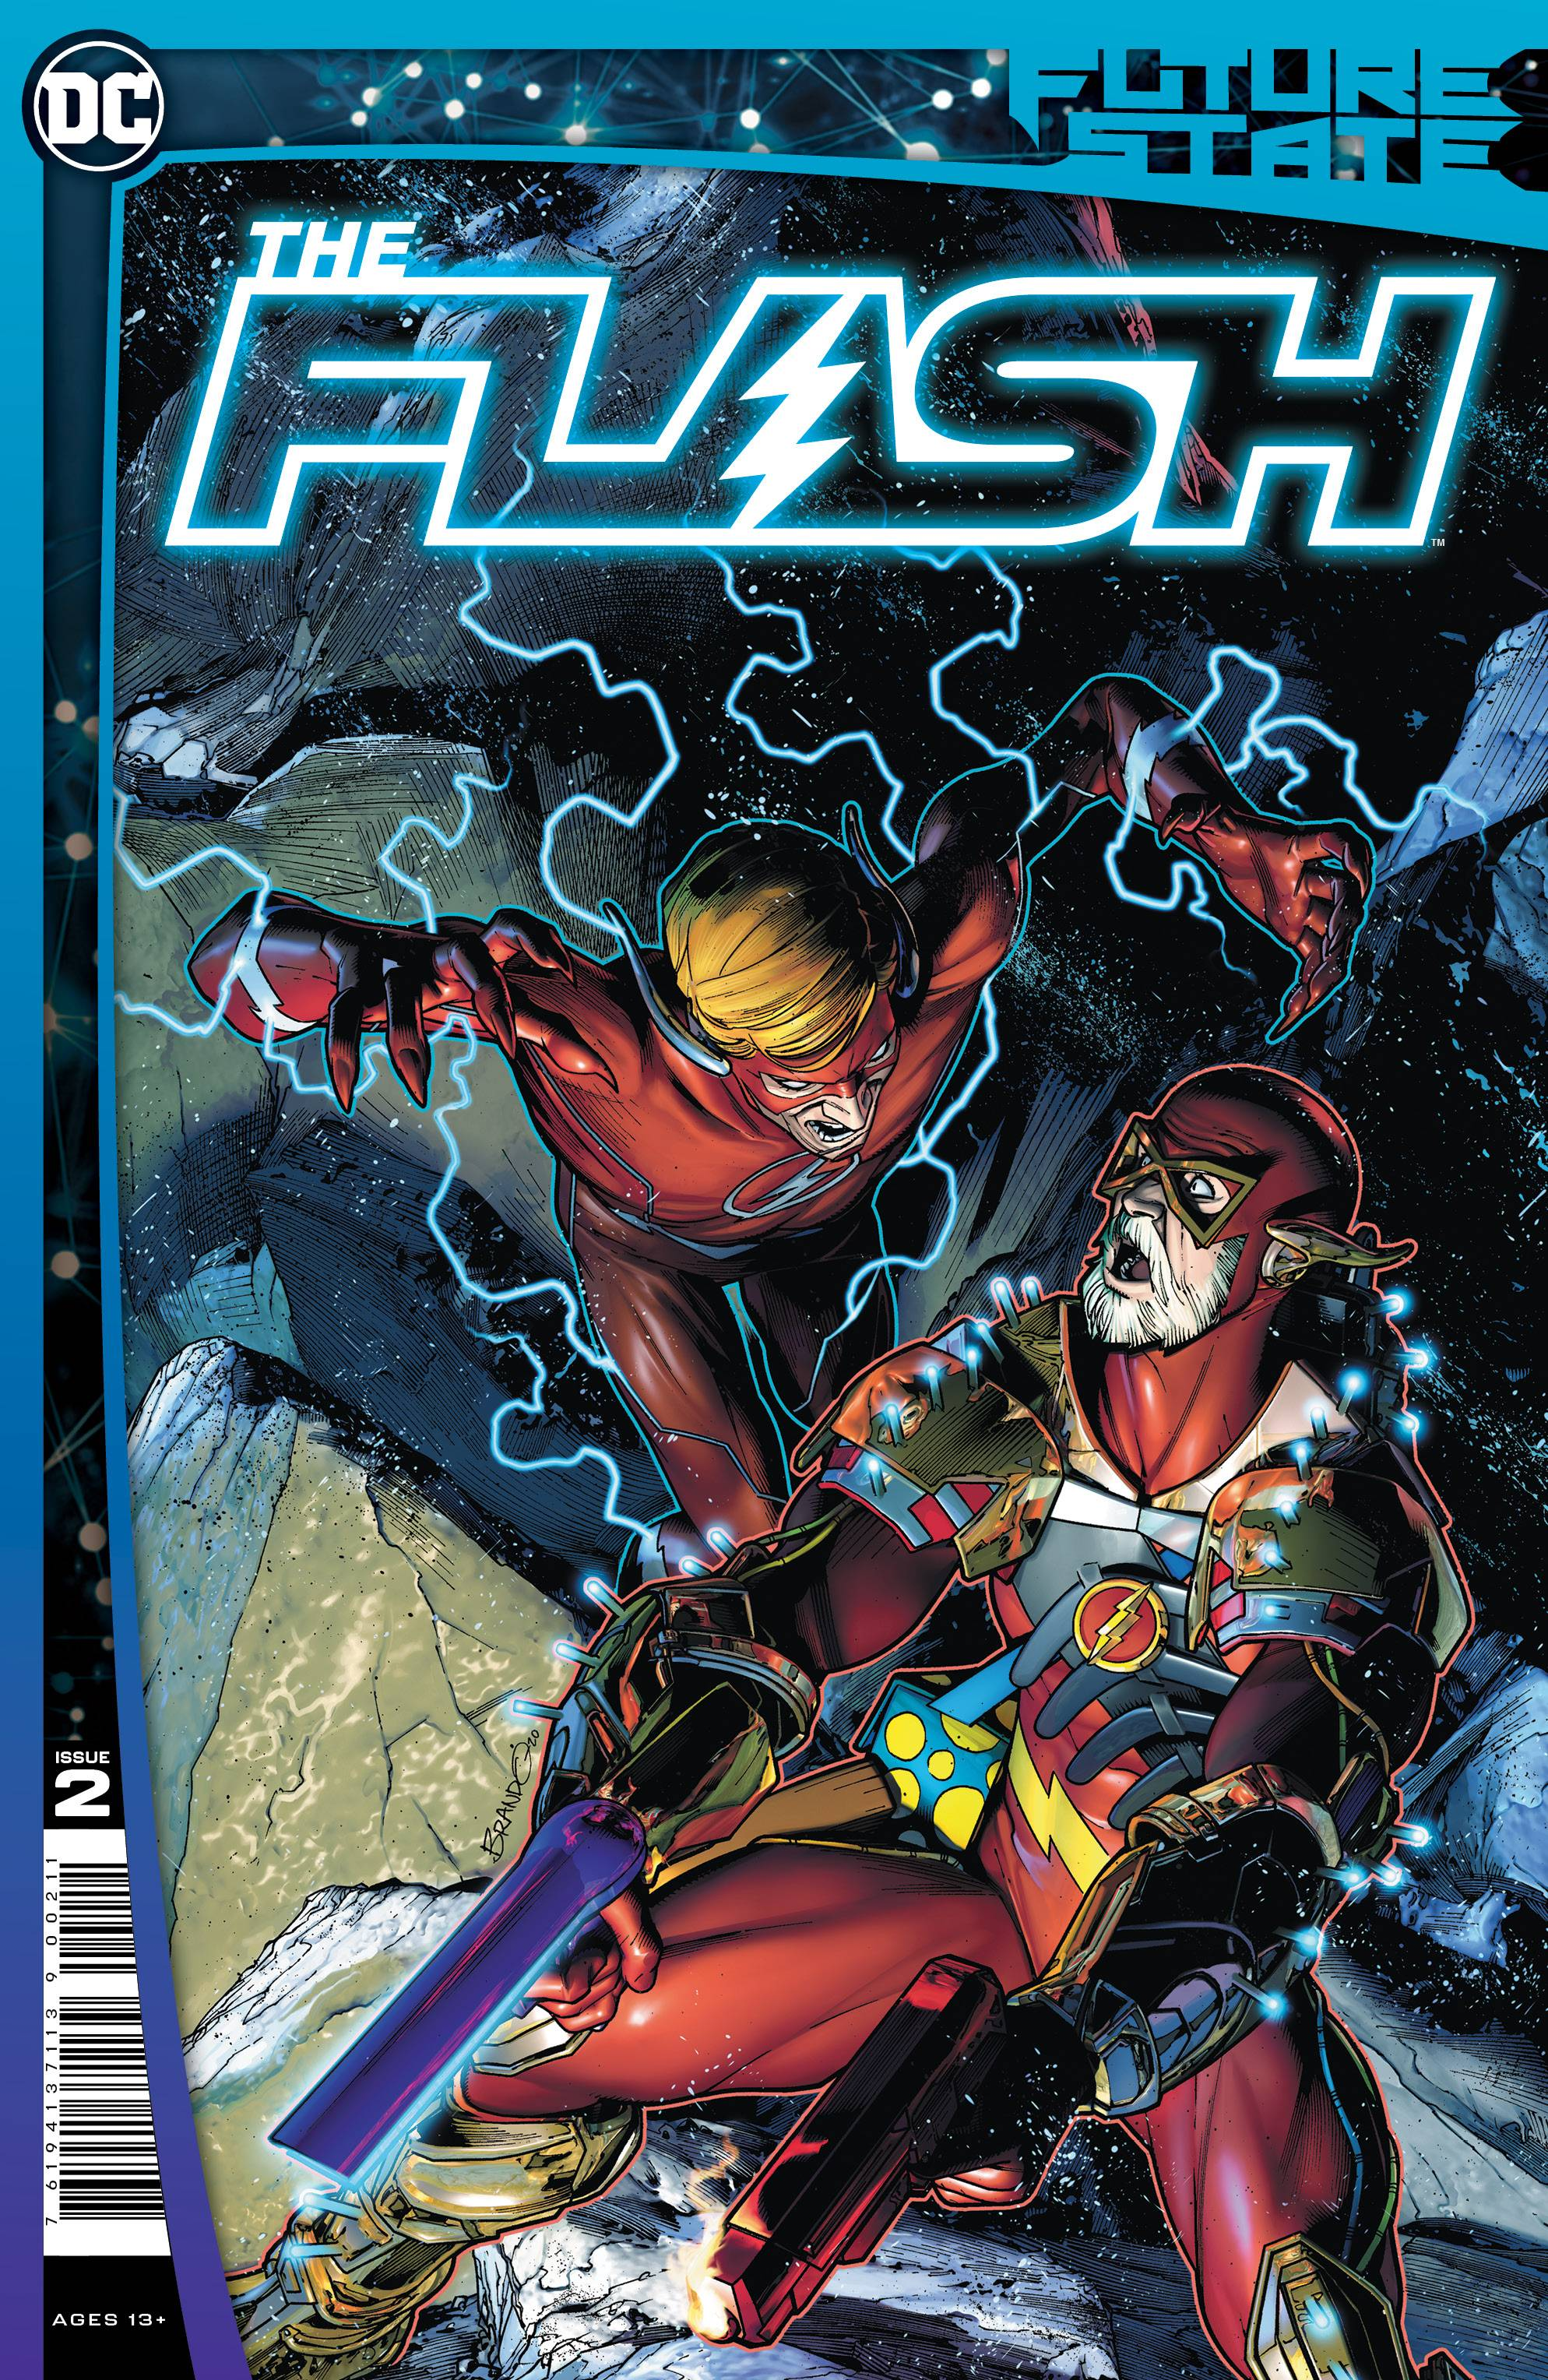 FUTURE STATE THE FLASH #2